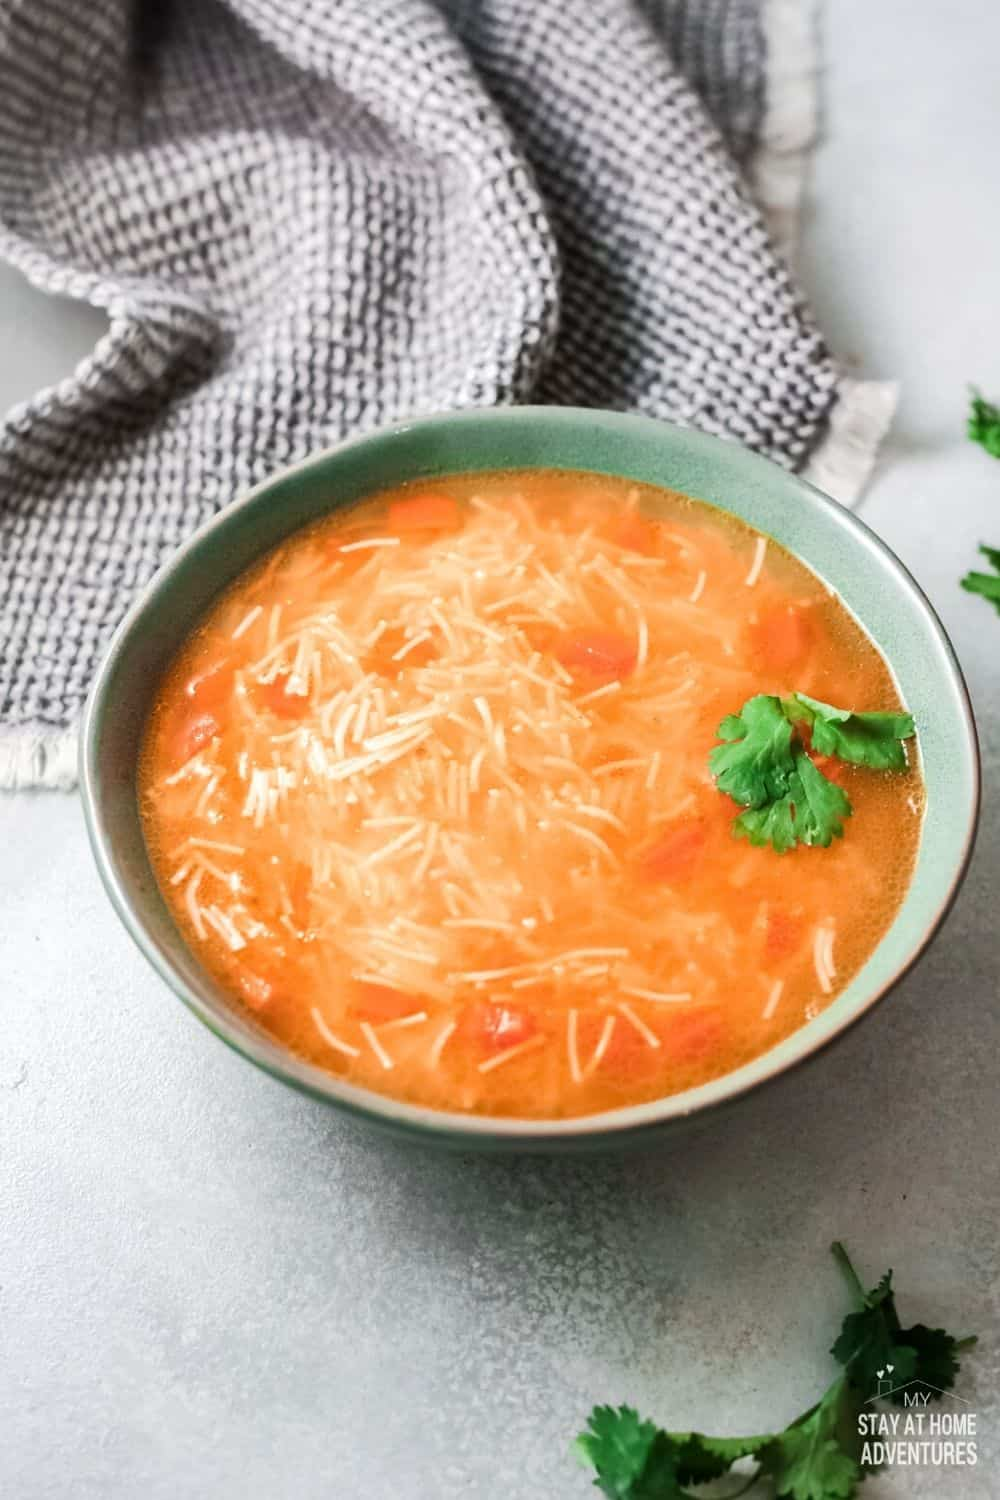 This simple and delicious. Sopa de Fideo made with chicken stock, tomatoes, fideo, onion, and garlic. Learn how to make it here! #soup #Spanishsoup #puertoricansoup #mexicansoup via @mystayathome